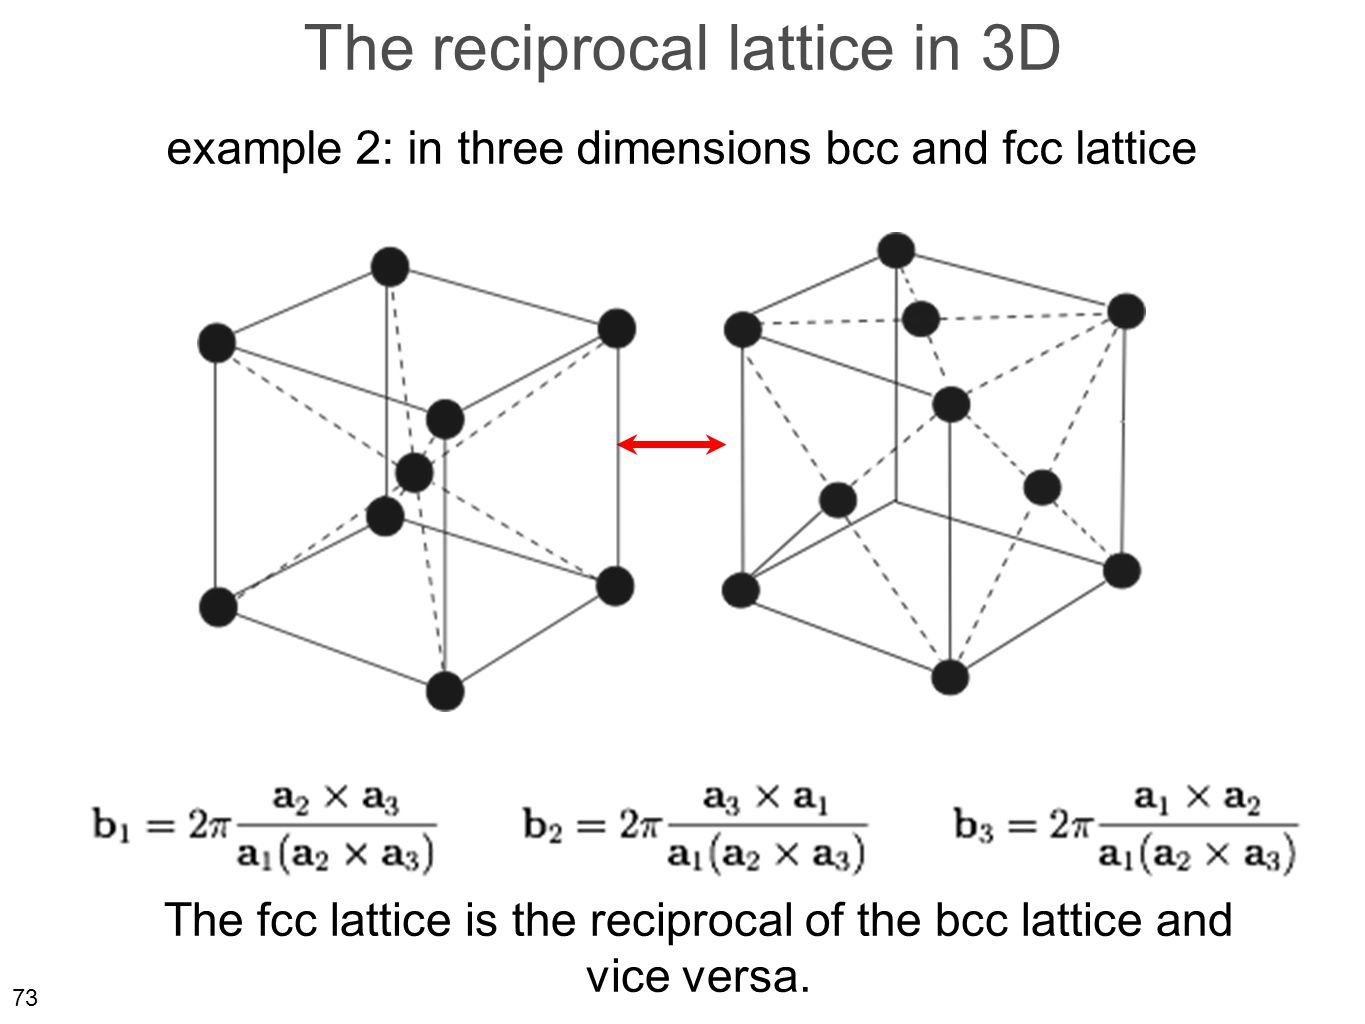 73 The reciprocal lattice in 3D example 2: in three dimensions bcc and fcc lattice The fcc lattice is the reciprocal of the bcc lattice and vice versa.